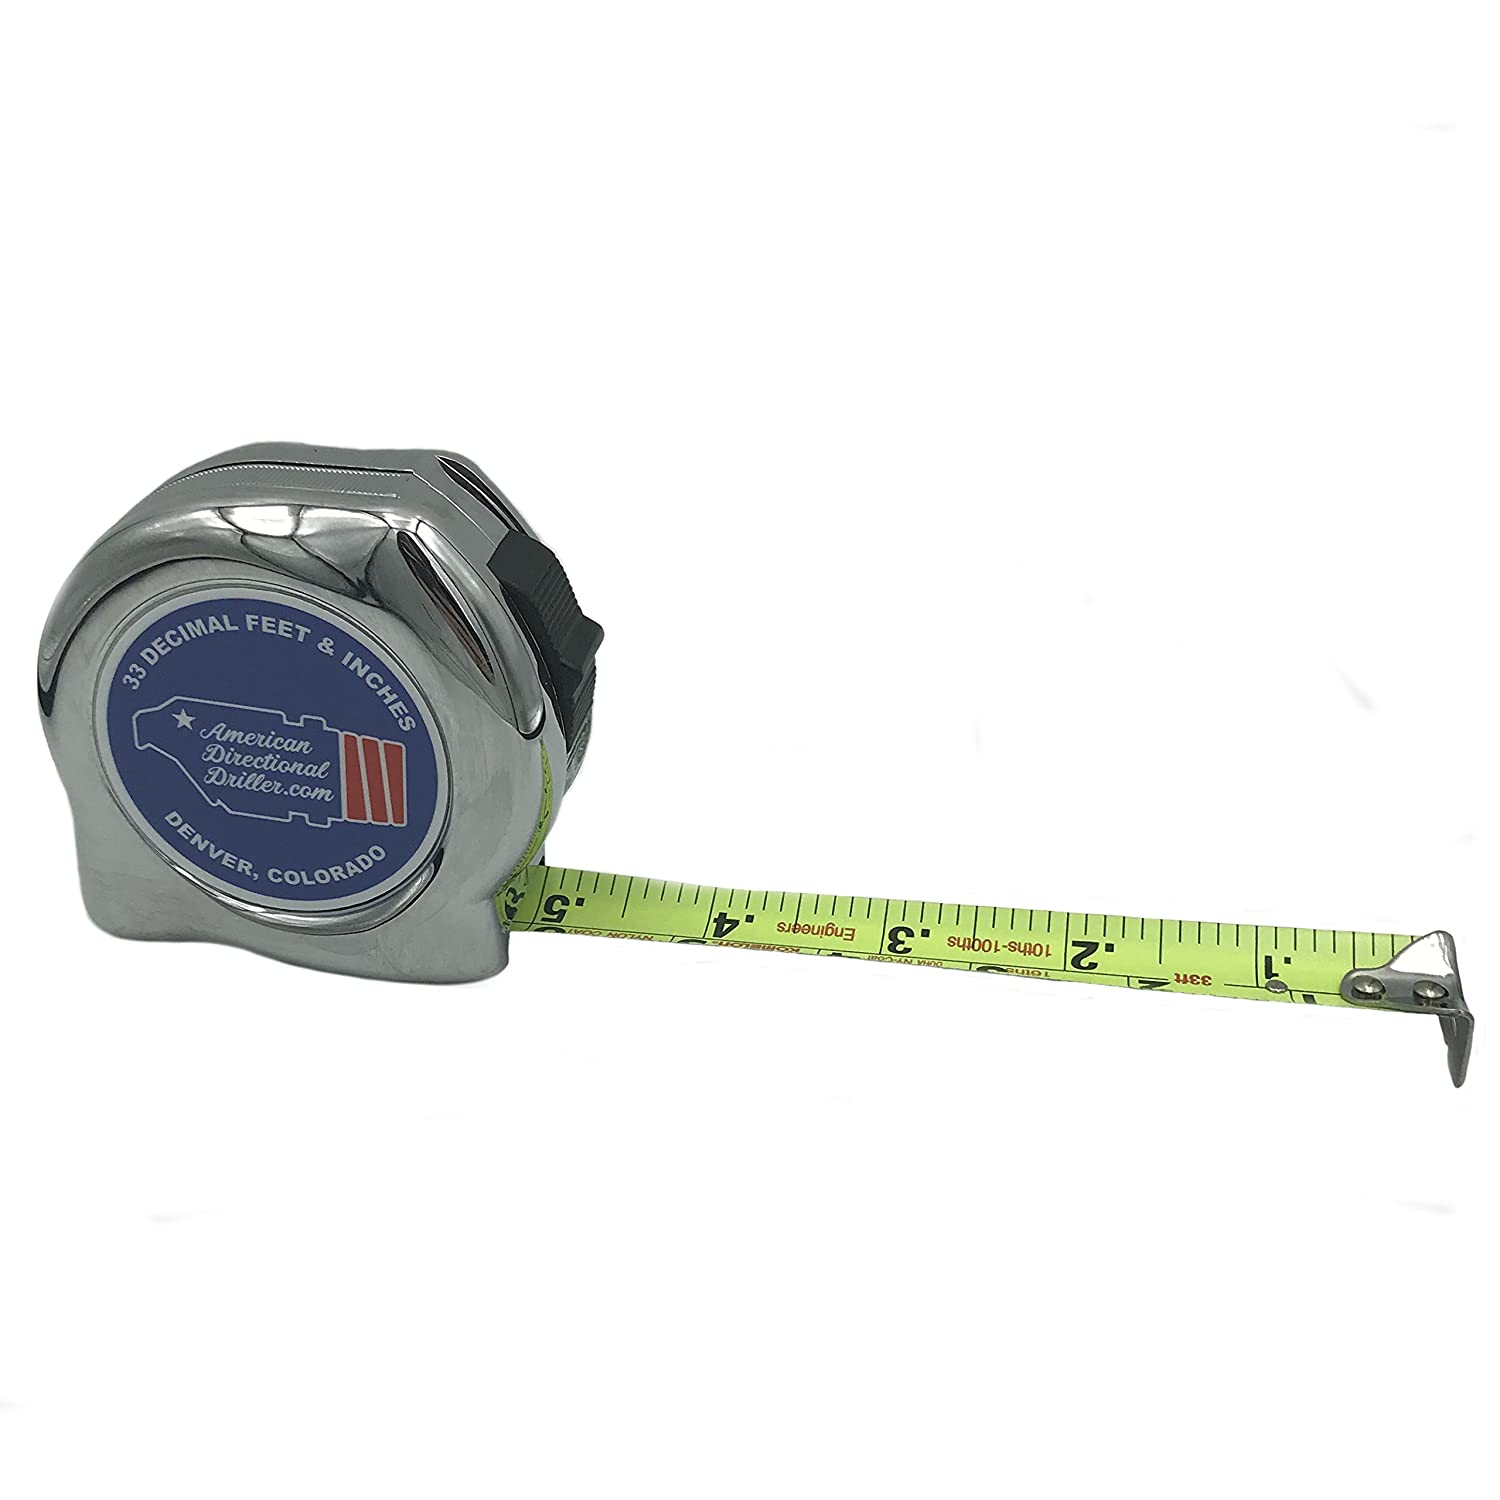 American Directional Driller BHA Tape Measure, 33 Decimal Feet and Inches (Engineer) (1) - - Amazon.com